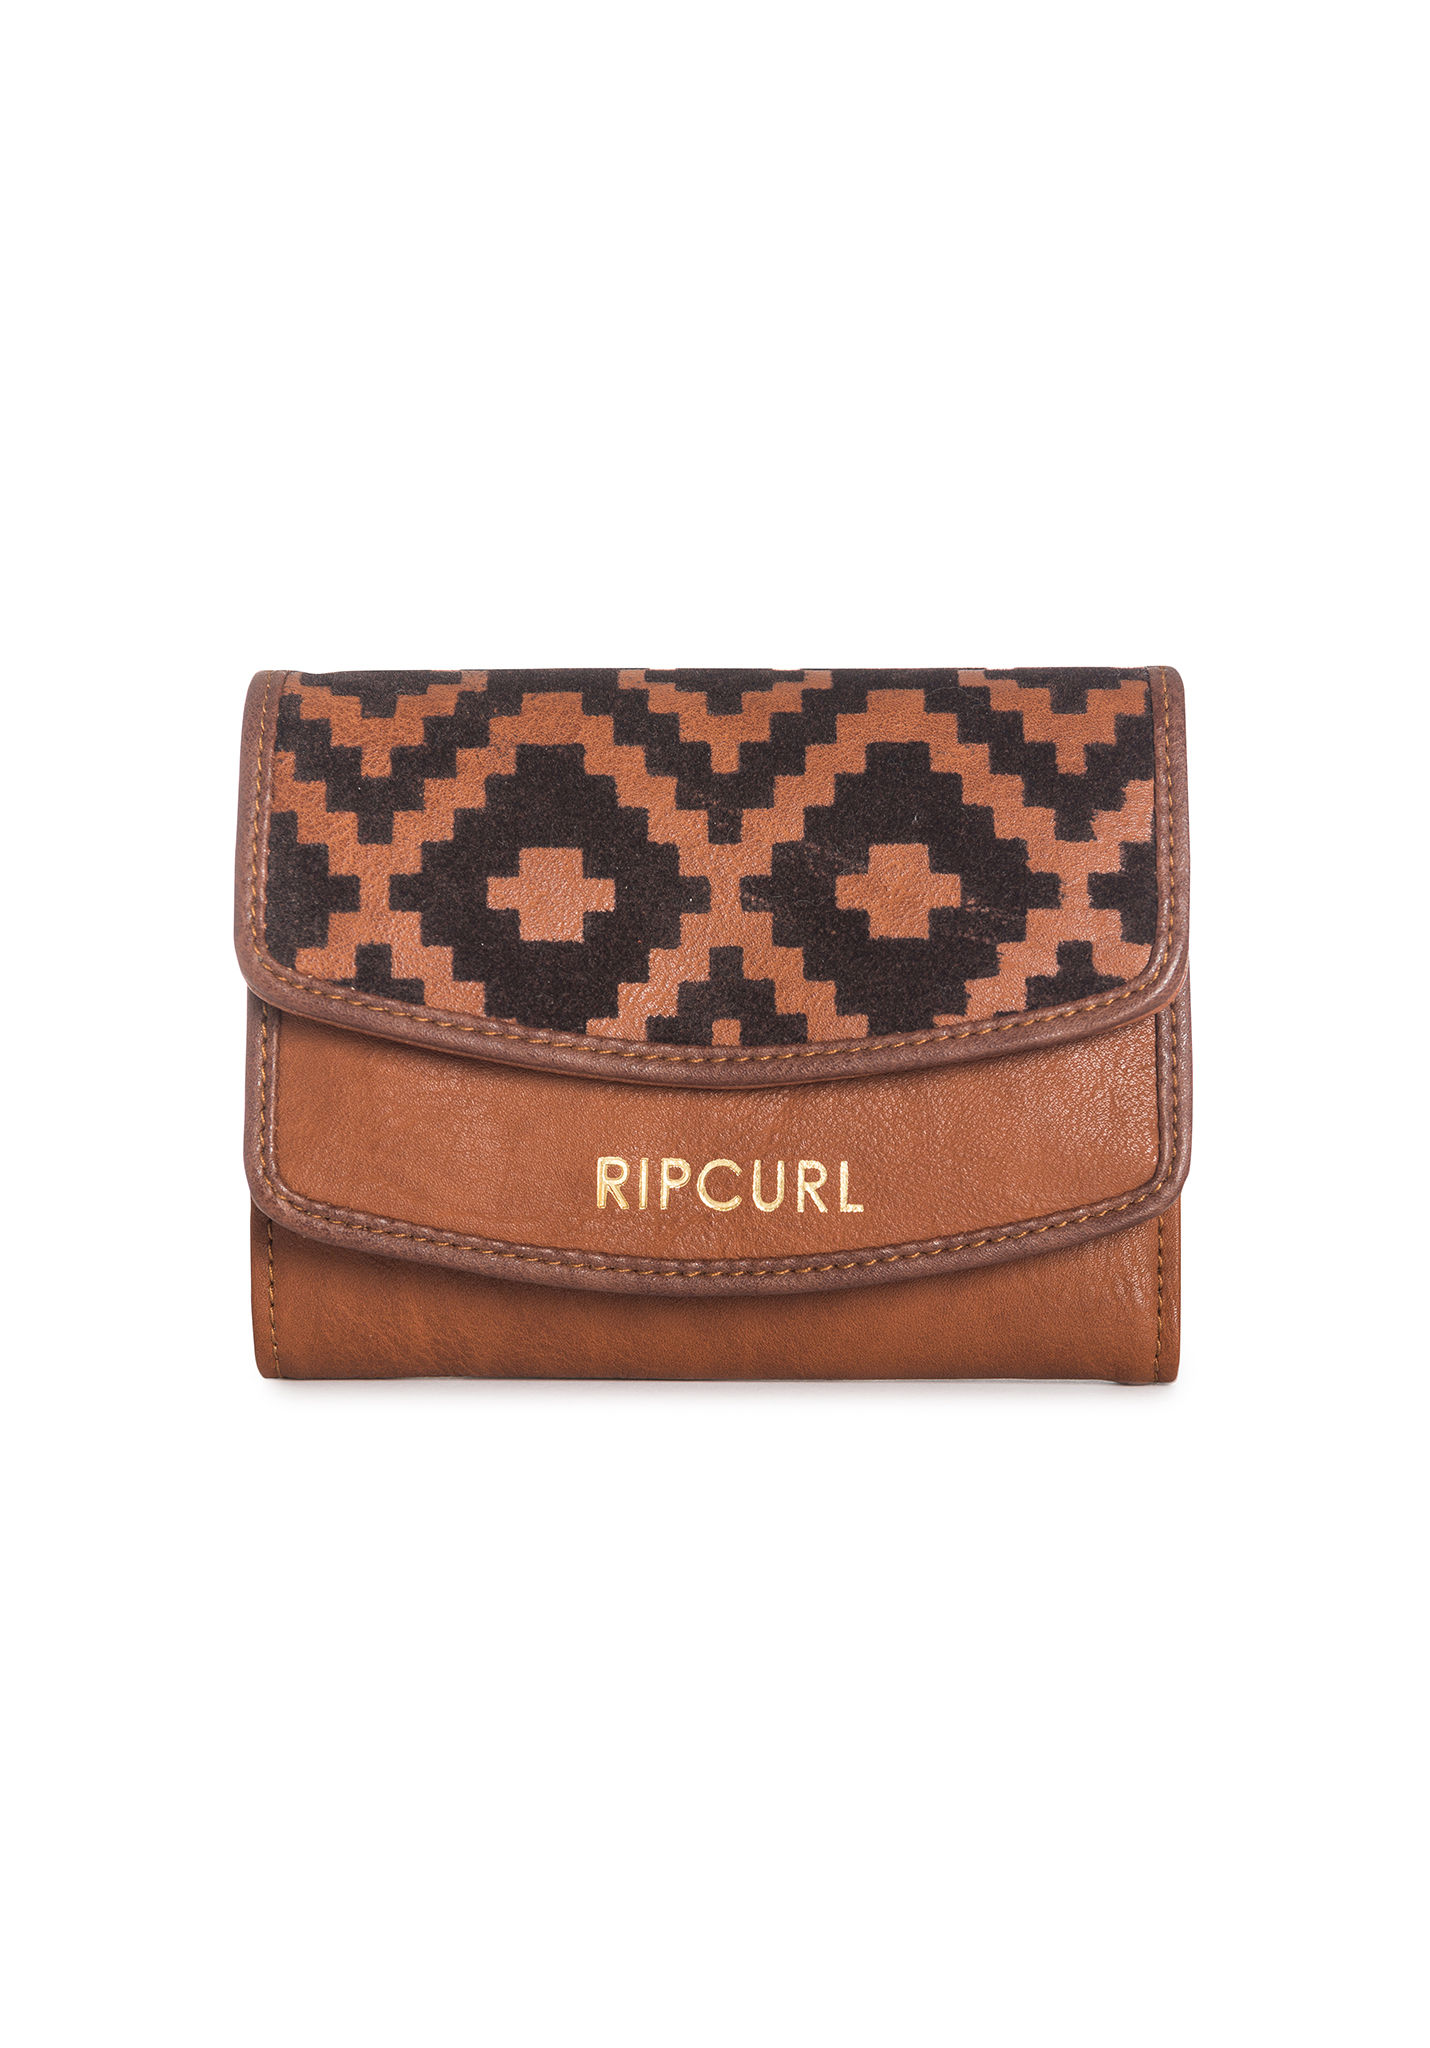 Rip Curl Portemonnee.Rip Curl Valdivia Wallet For Women Brown Planet Sports